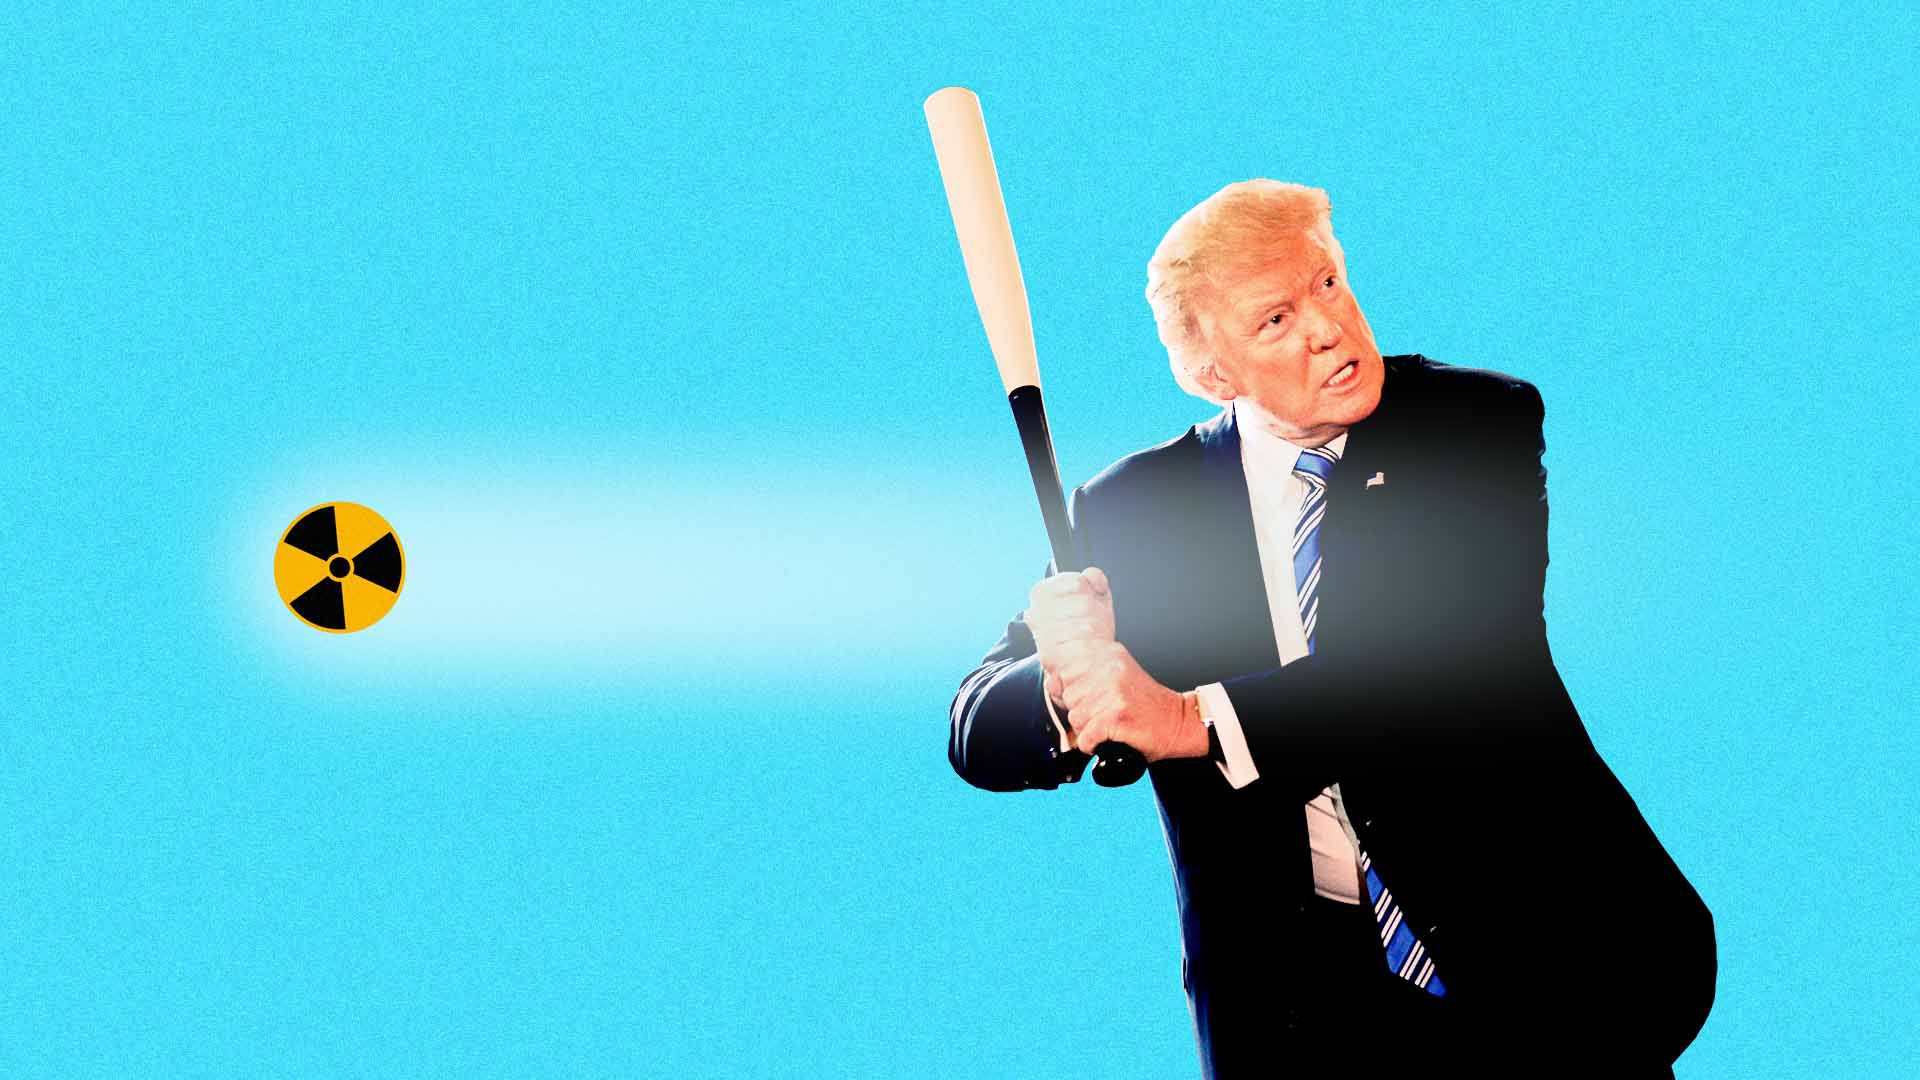 Illustration of President Trump holding a baseball bat with a nuclear reactor symbol sailing by